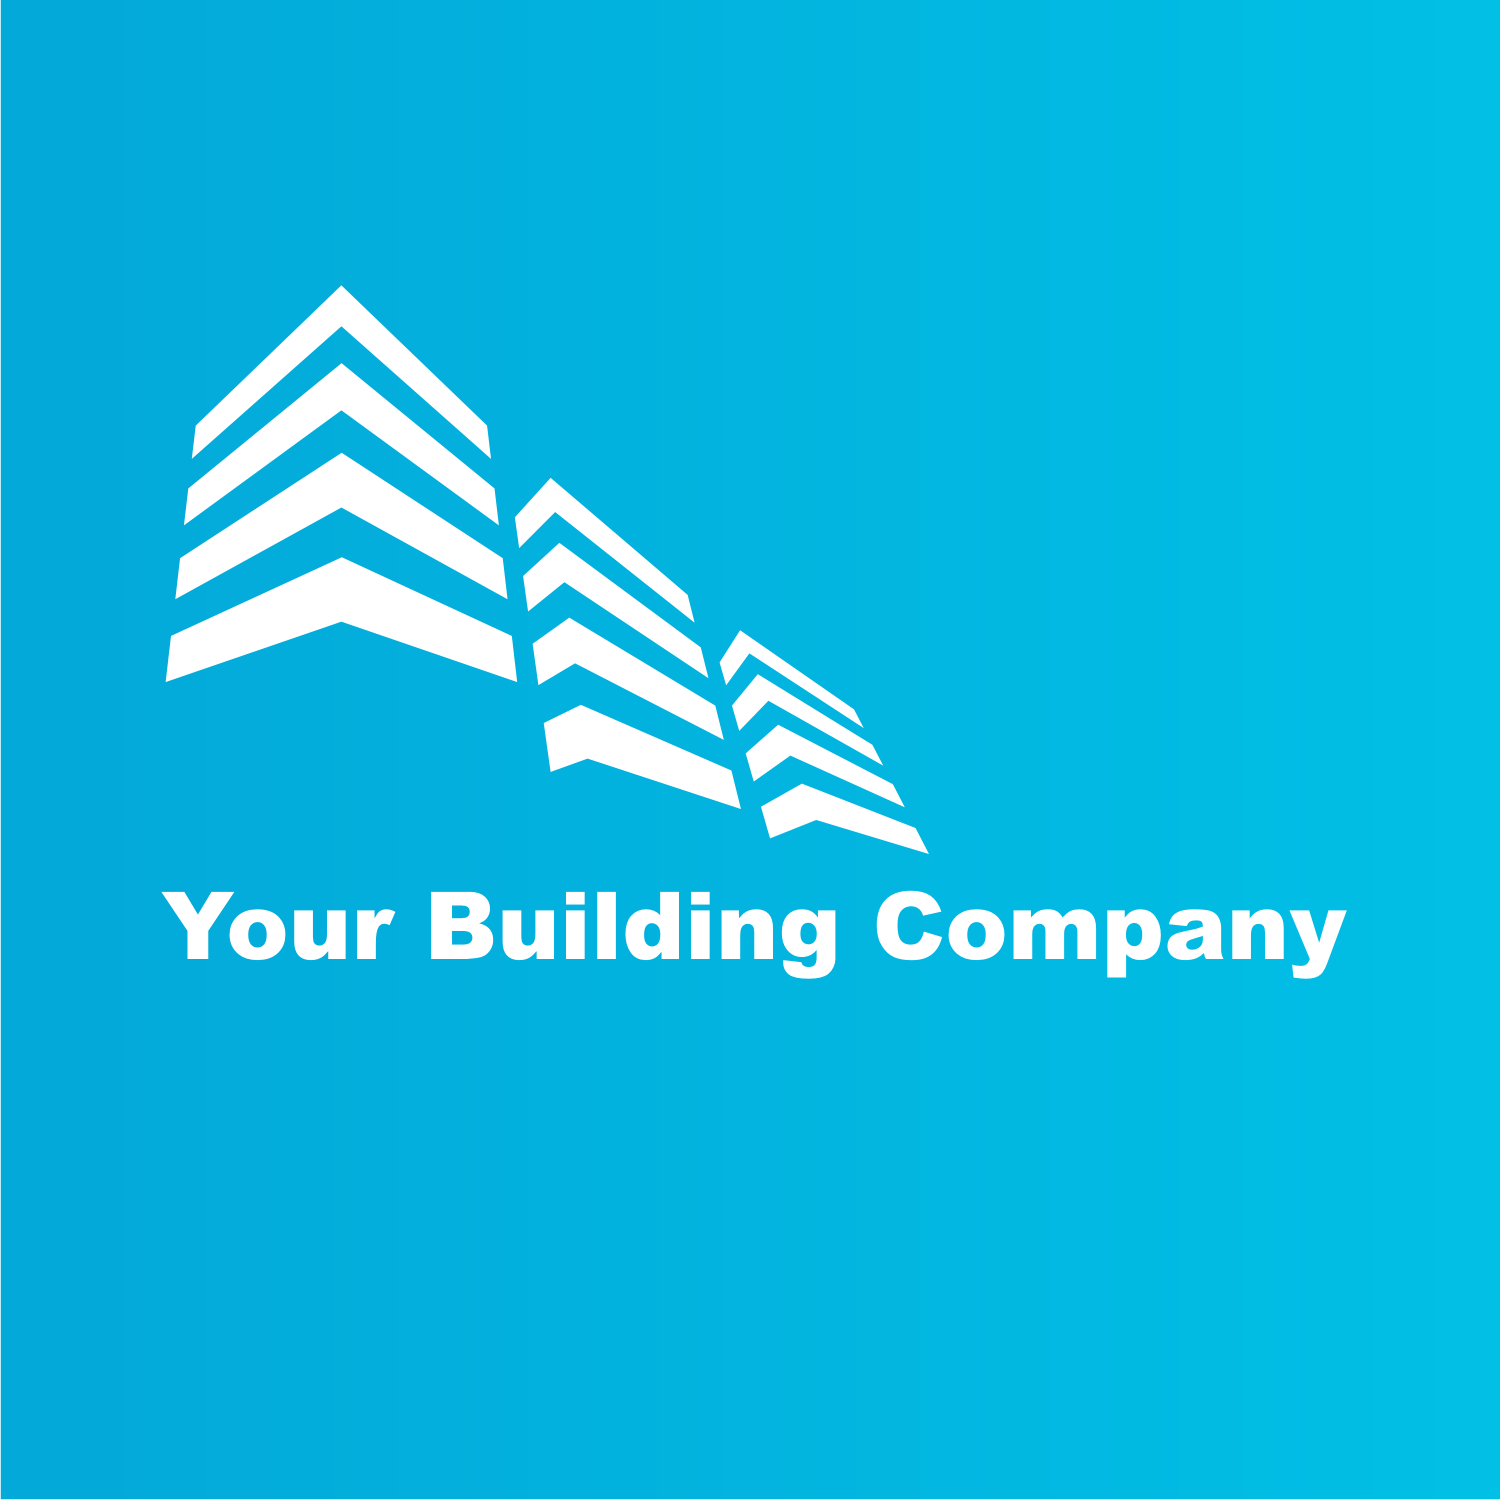 Building logo. Free vector template.